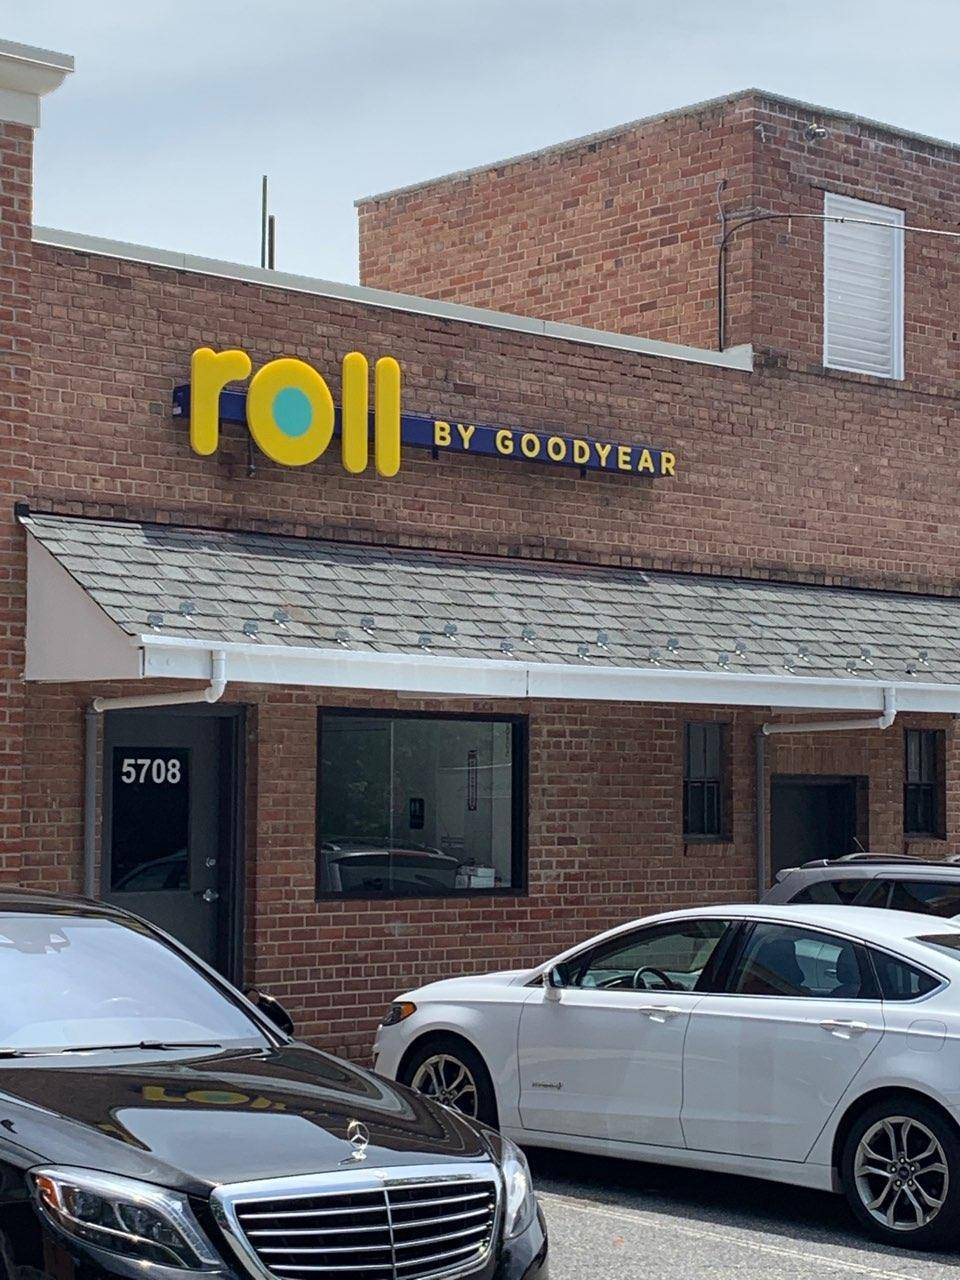 Roll by Goodyear - car repair  | Photo 1 of 7 | Address: 5708 Connecticut Ave NW, Washington, DC 20015, USA | Phone: (240) 907-6463